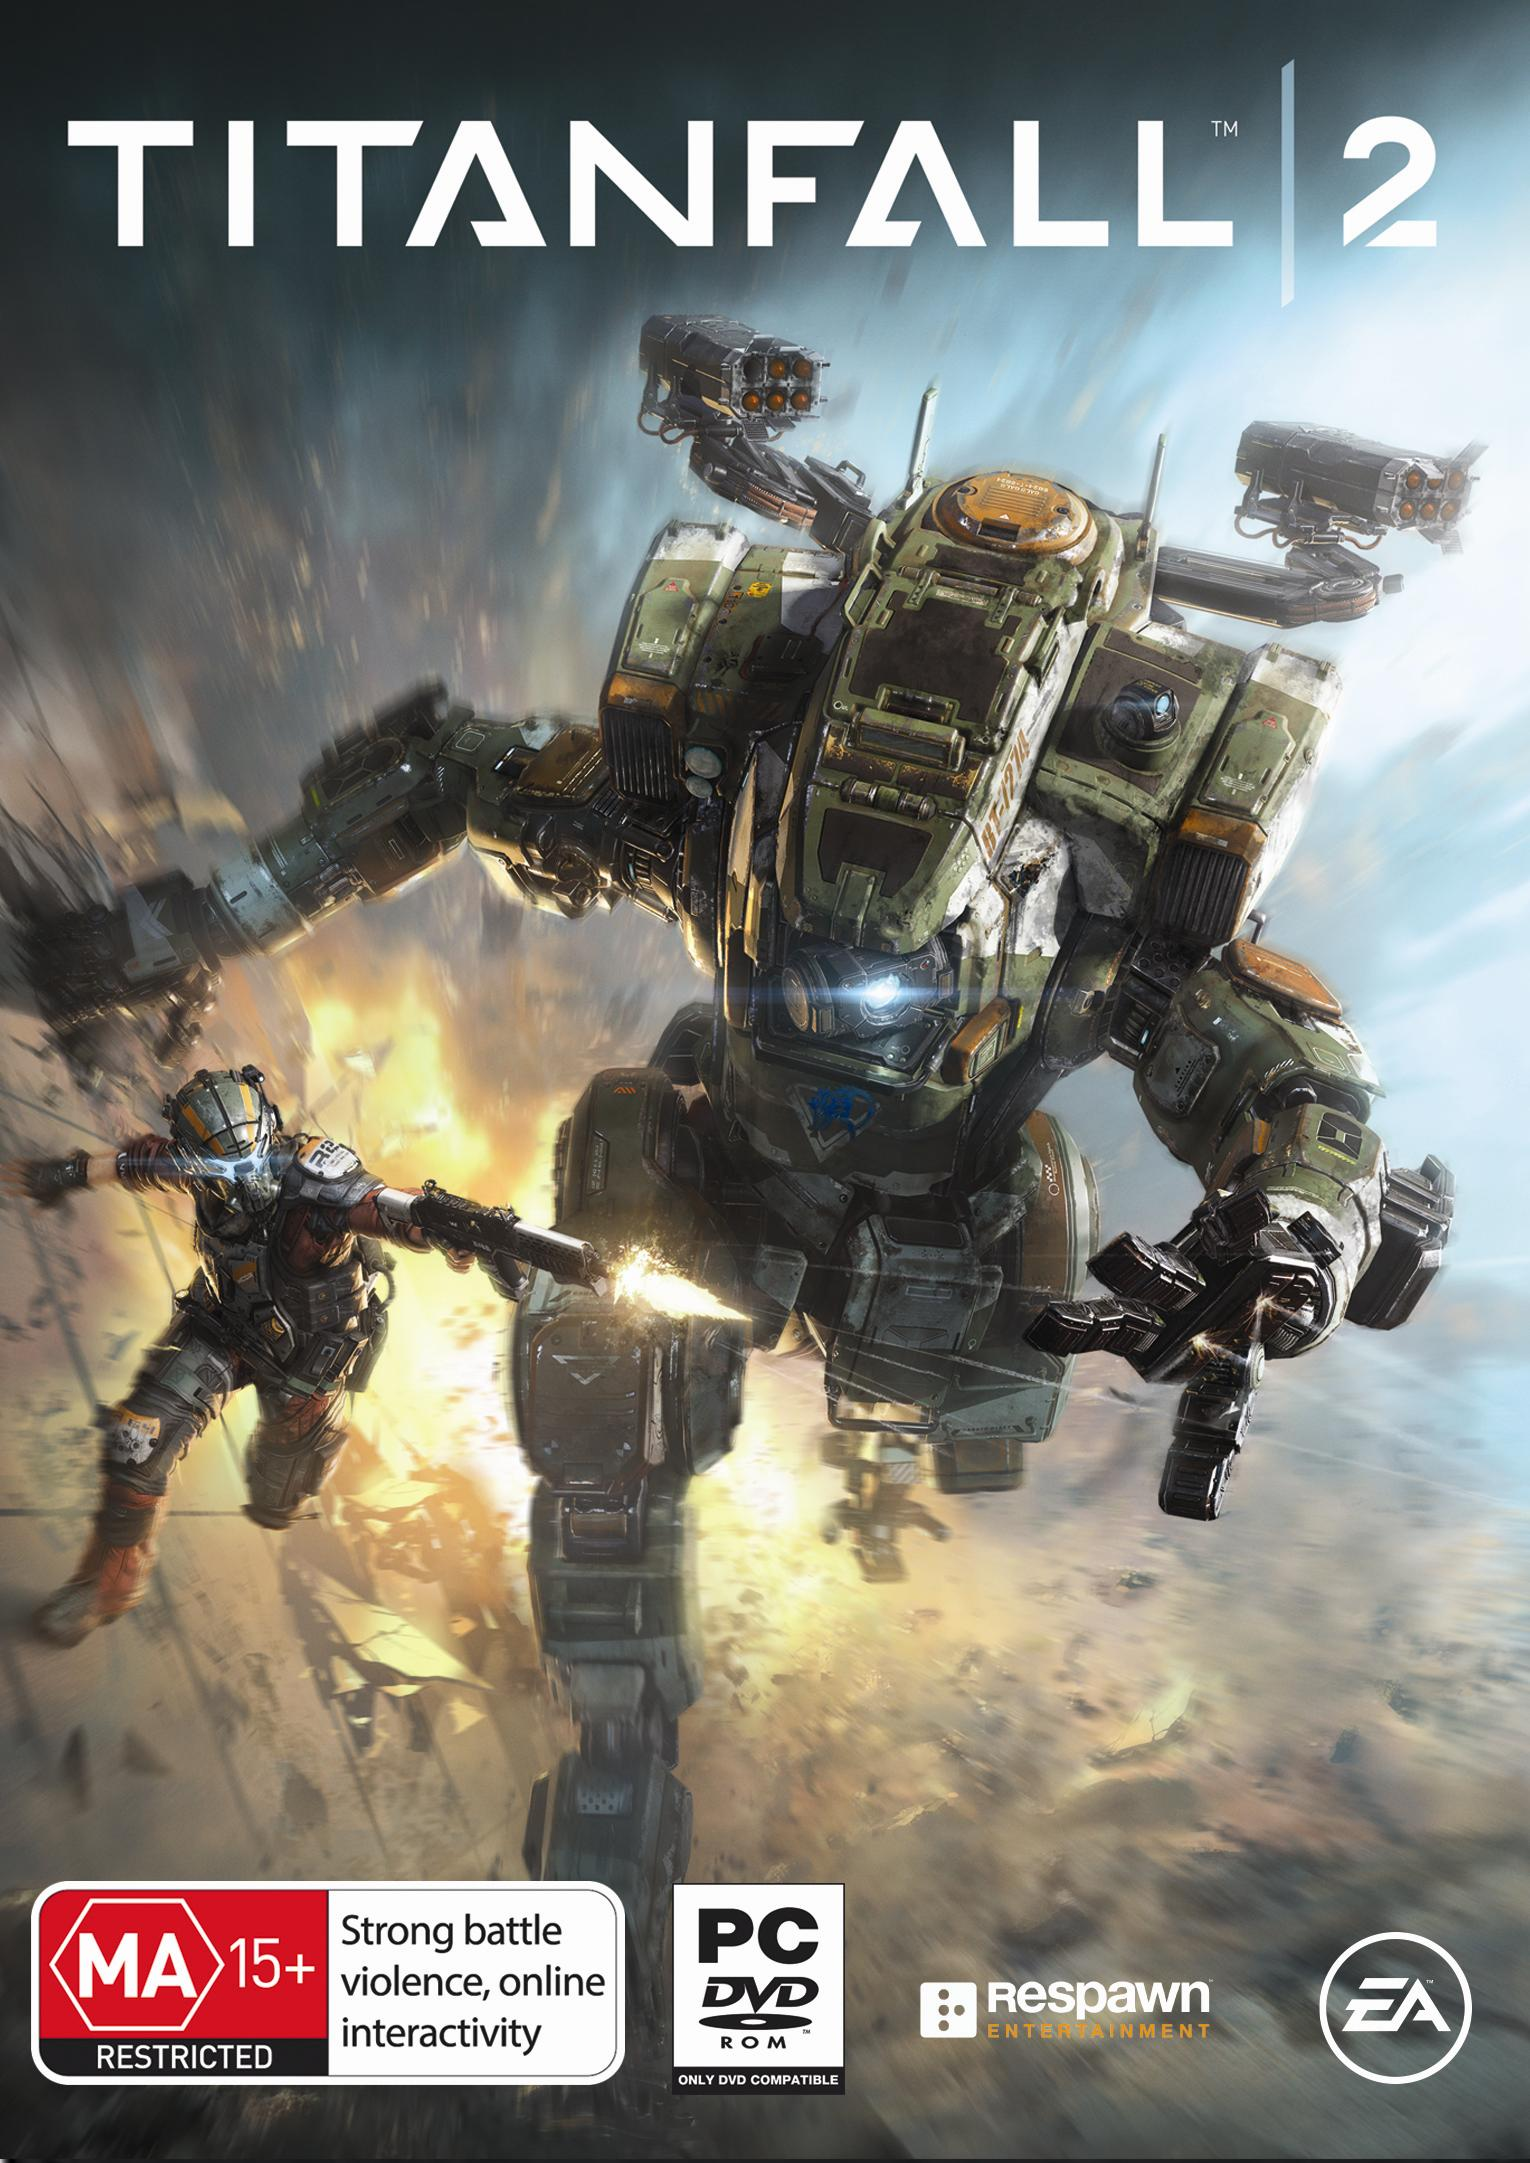 Titanfall 2 Review – Capsule Computers